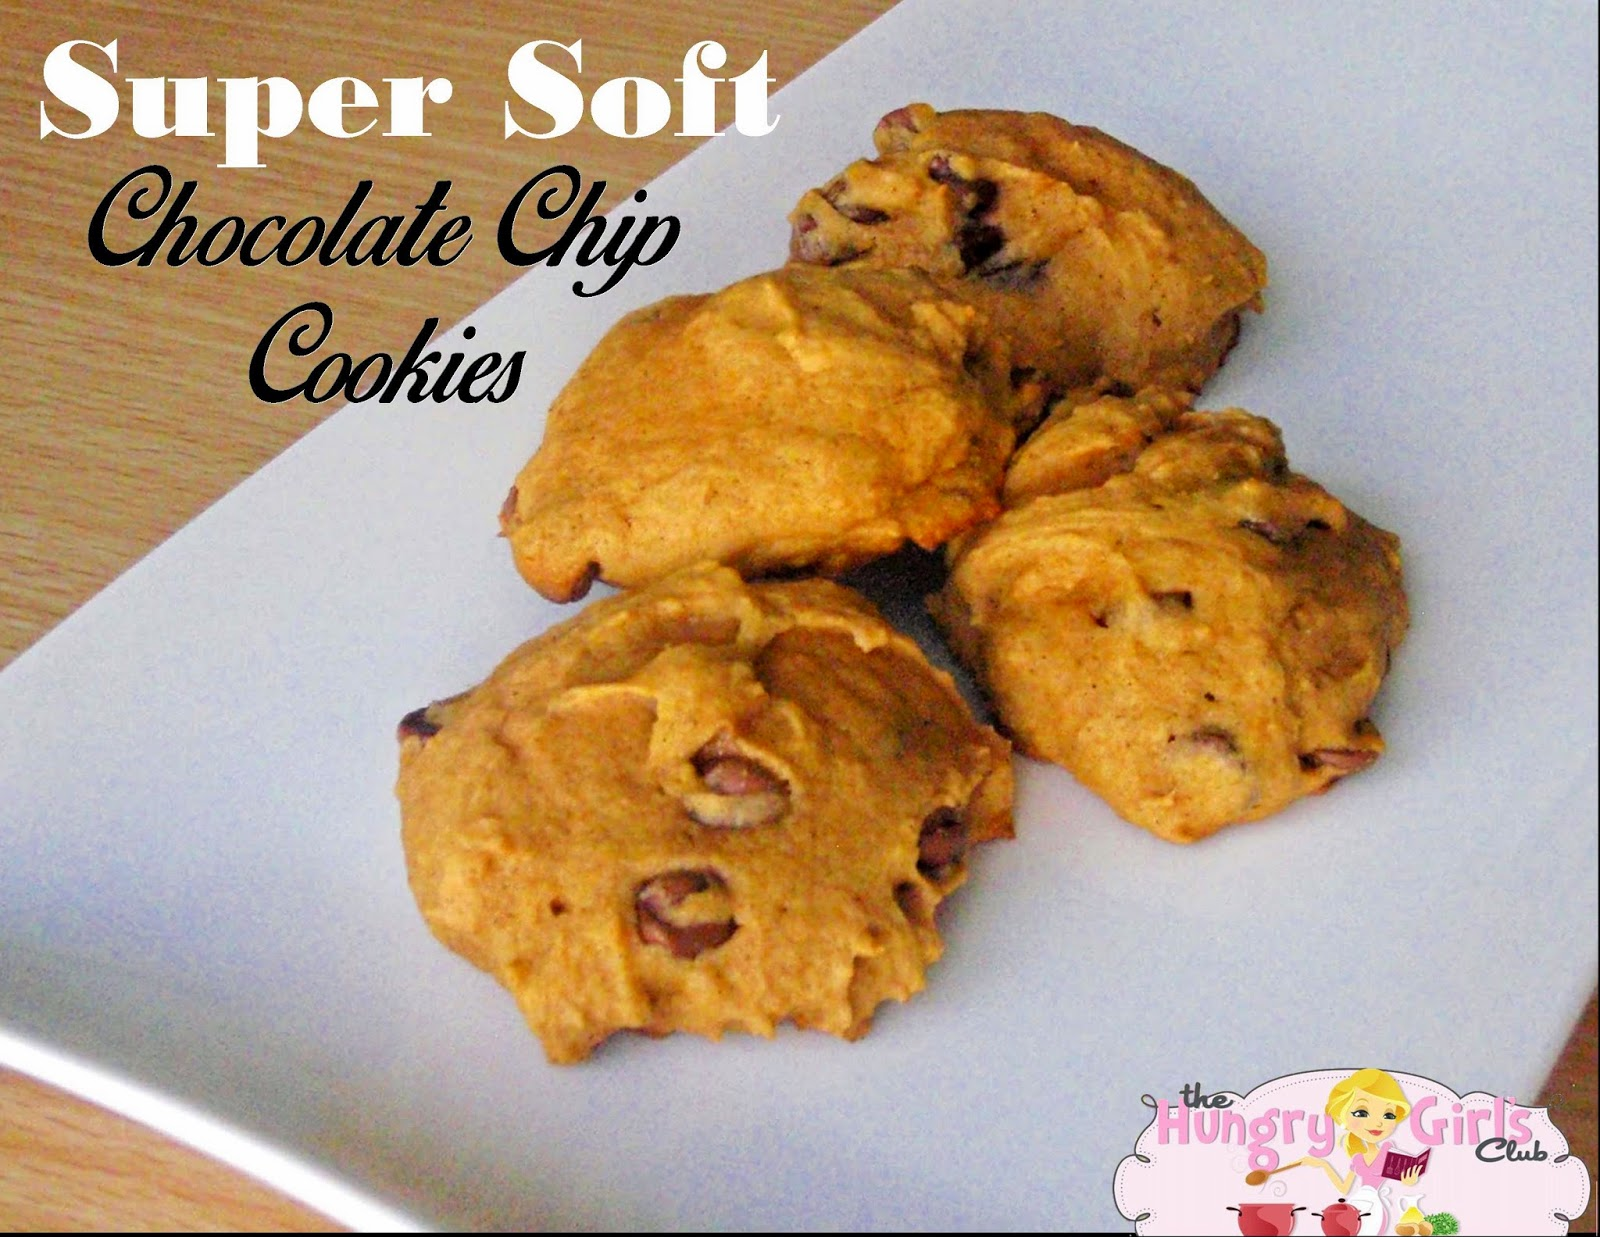 The Hungry Girl's Club: Super Soft Pumpkin Chocolate Chip Cookies